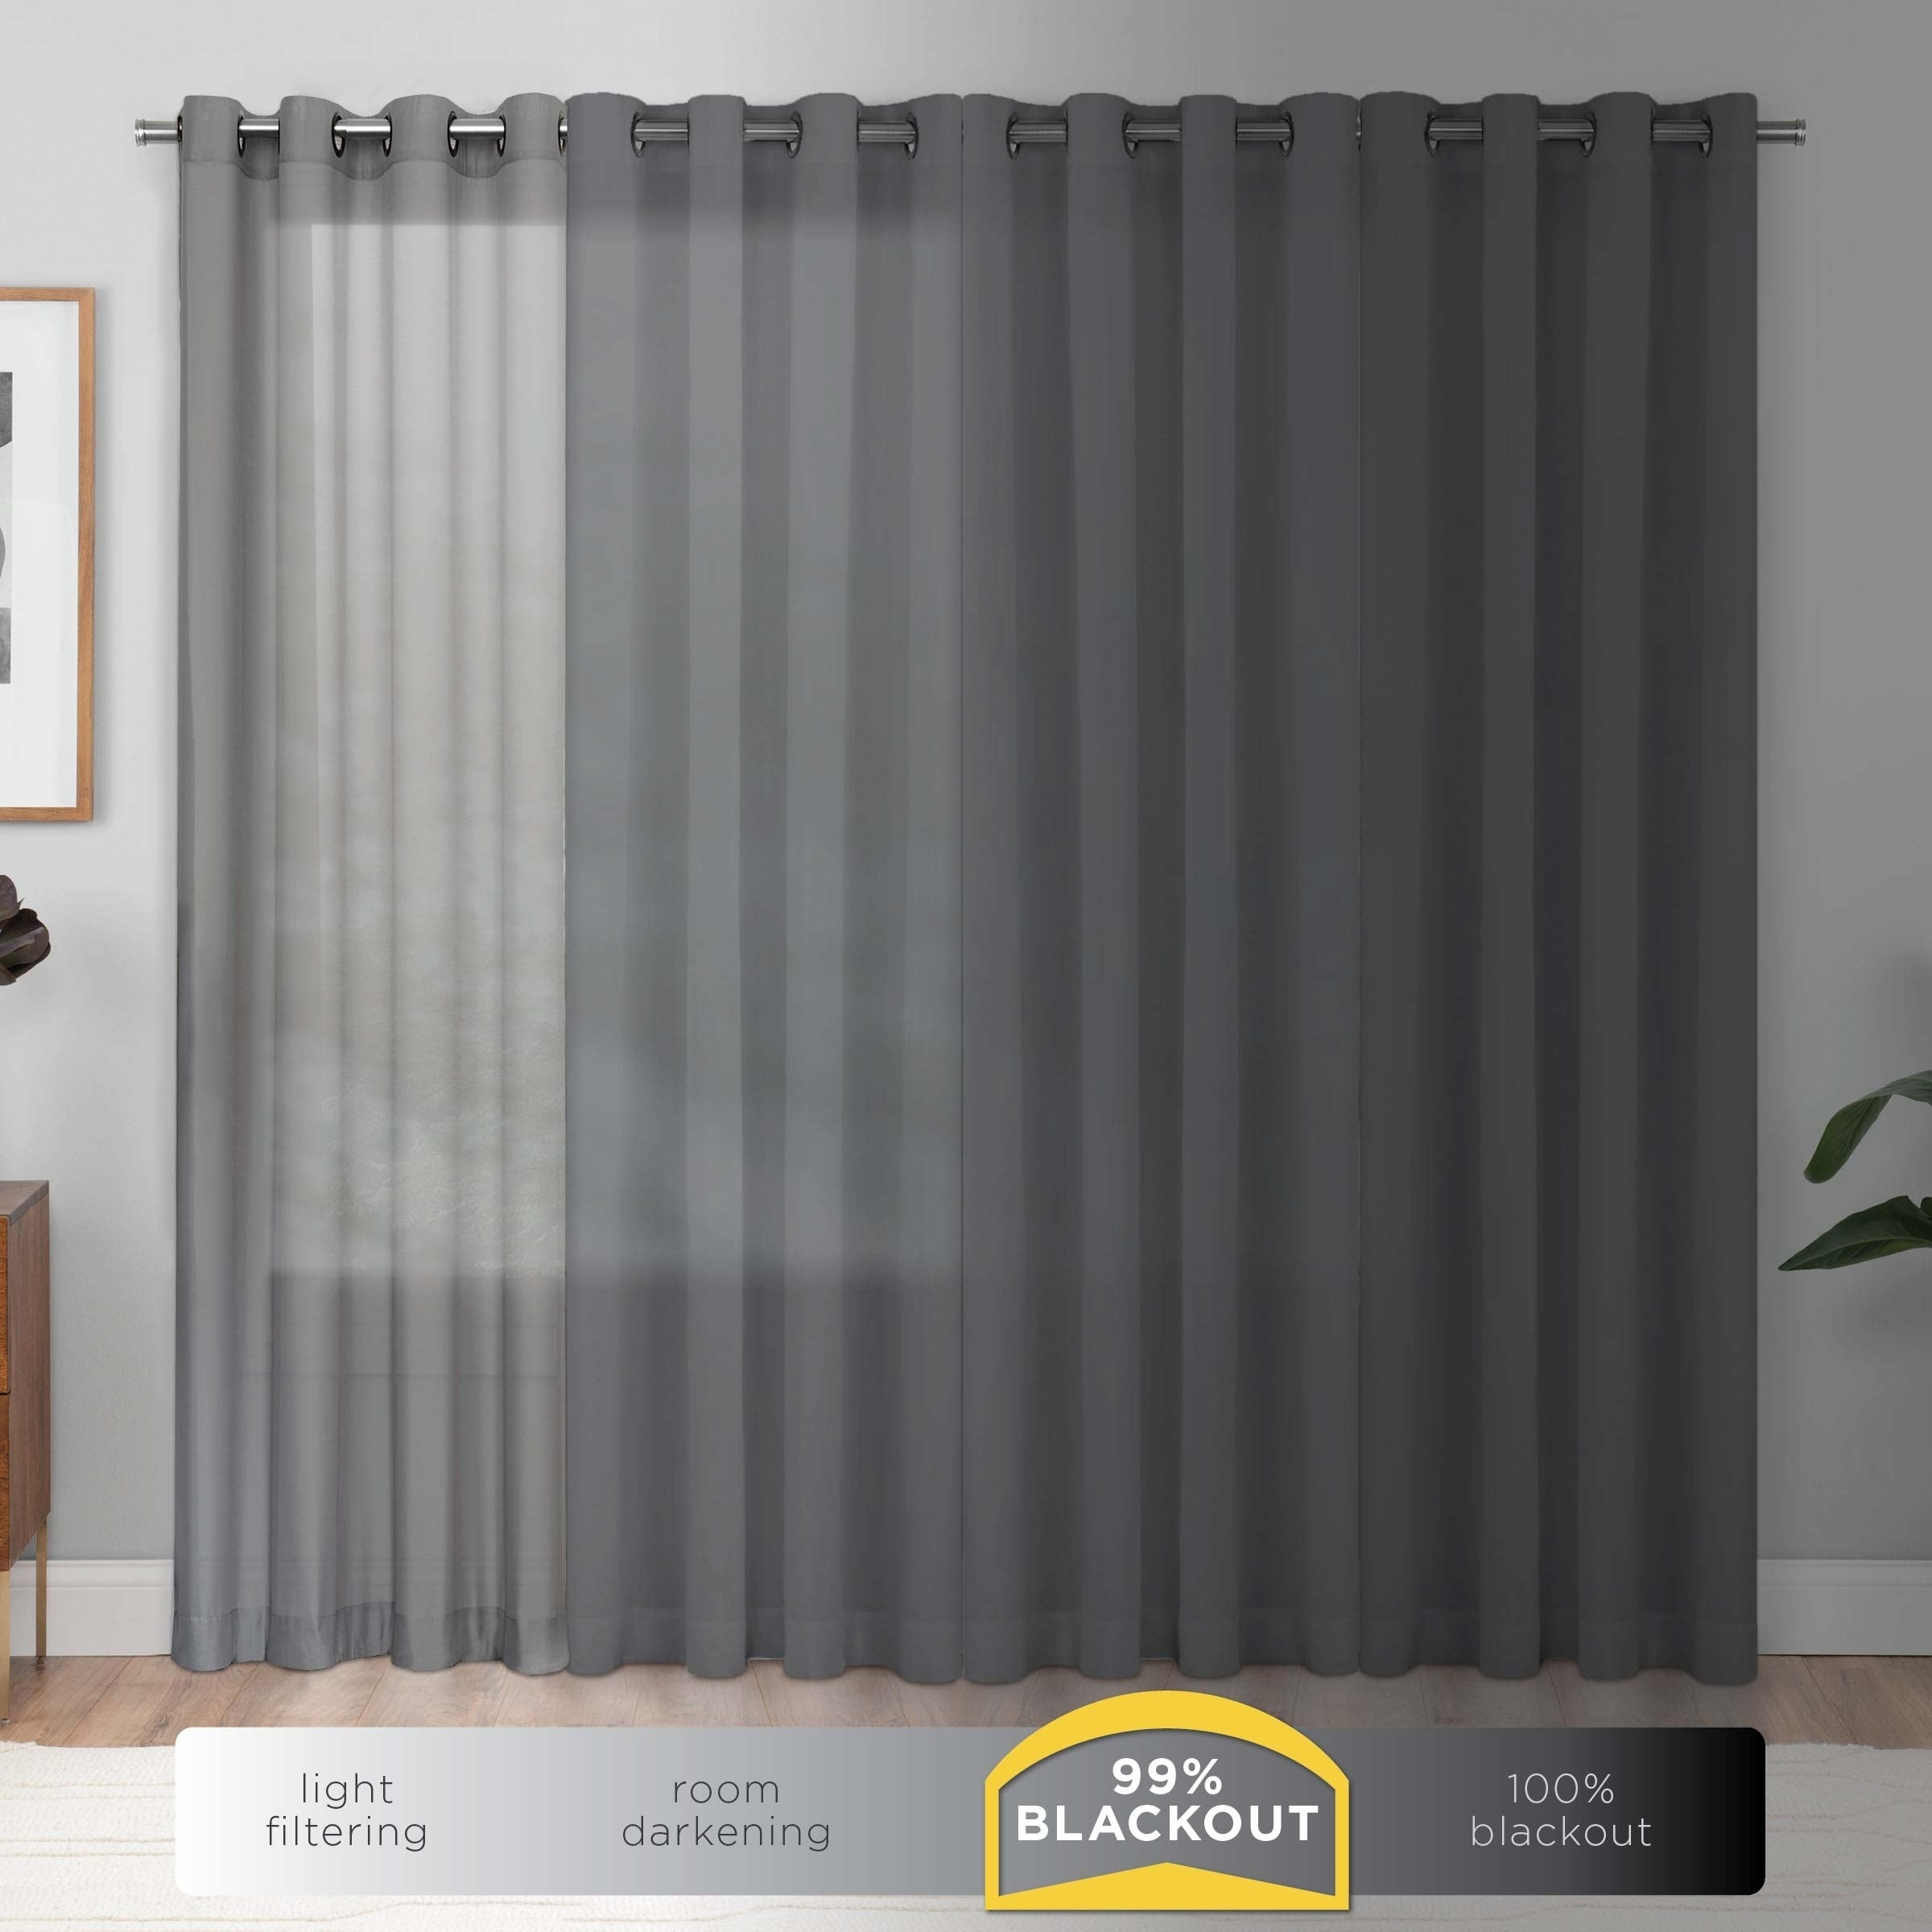 Eclipse Newport Blackout Curtain Panel – 52x95 Throughout Eclipse Newport Blackout Curtain Panels (View 3 of 20)